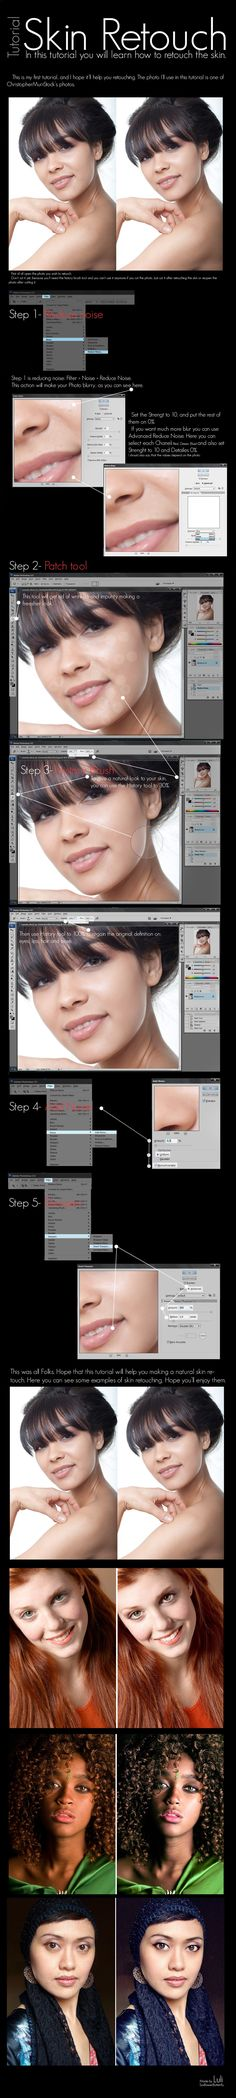 Skin Retouch Tutorial (very easy and quicker than I use to do it)